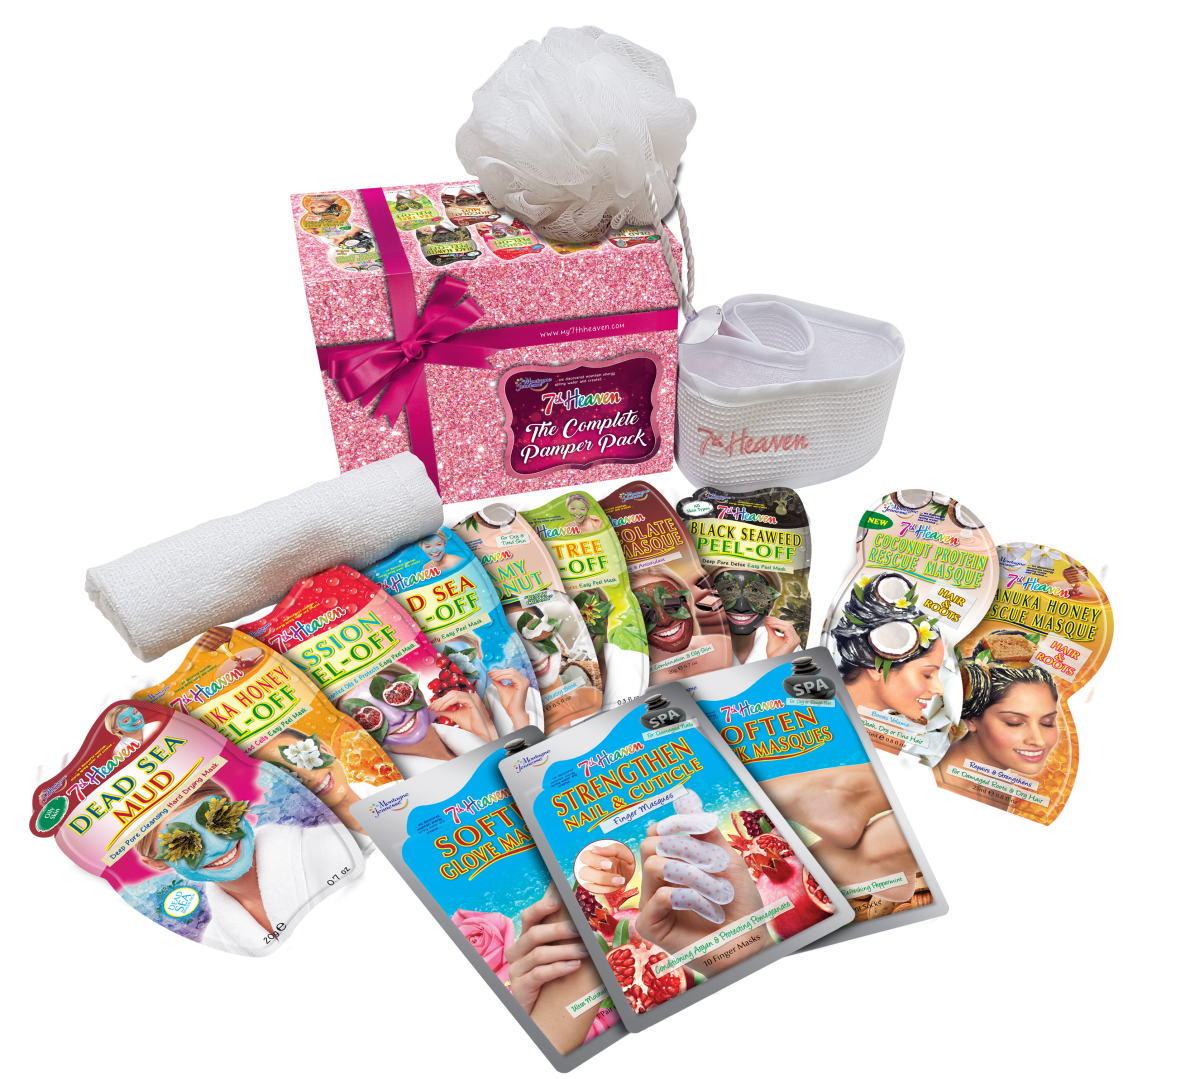 Win a complete pamper pack in time for Christmas